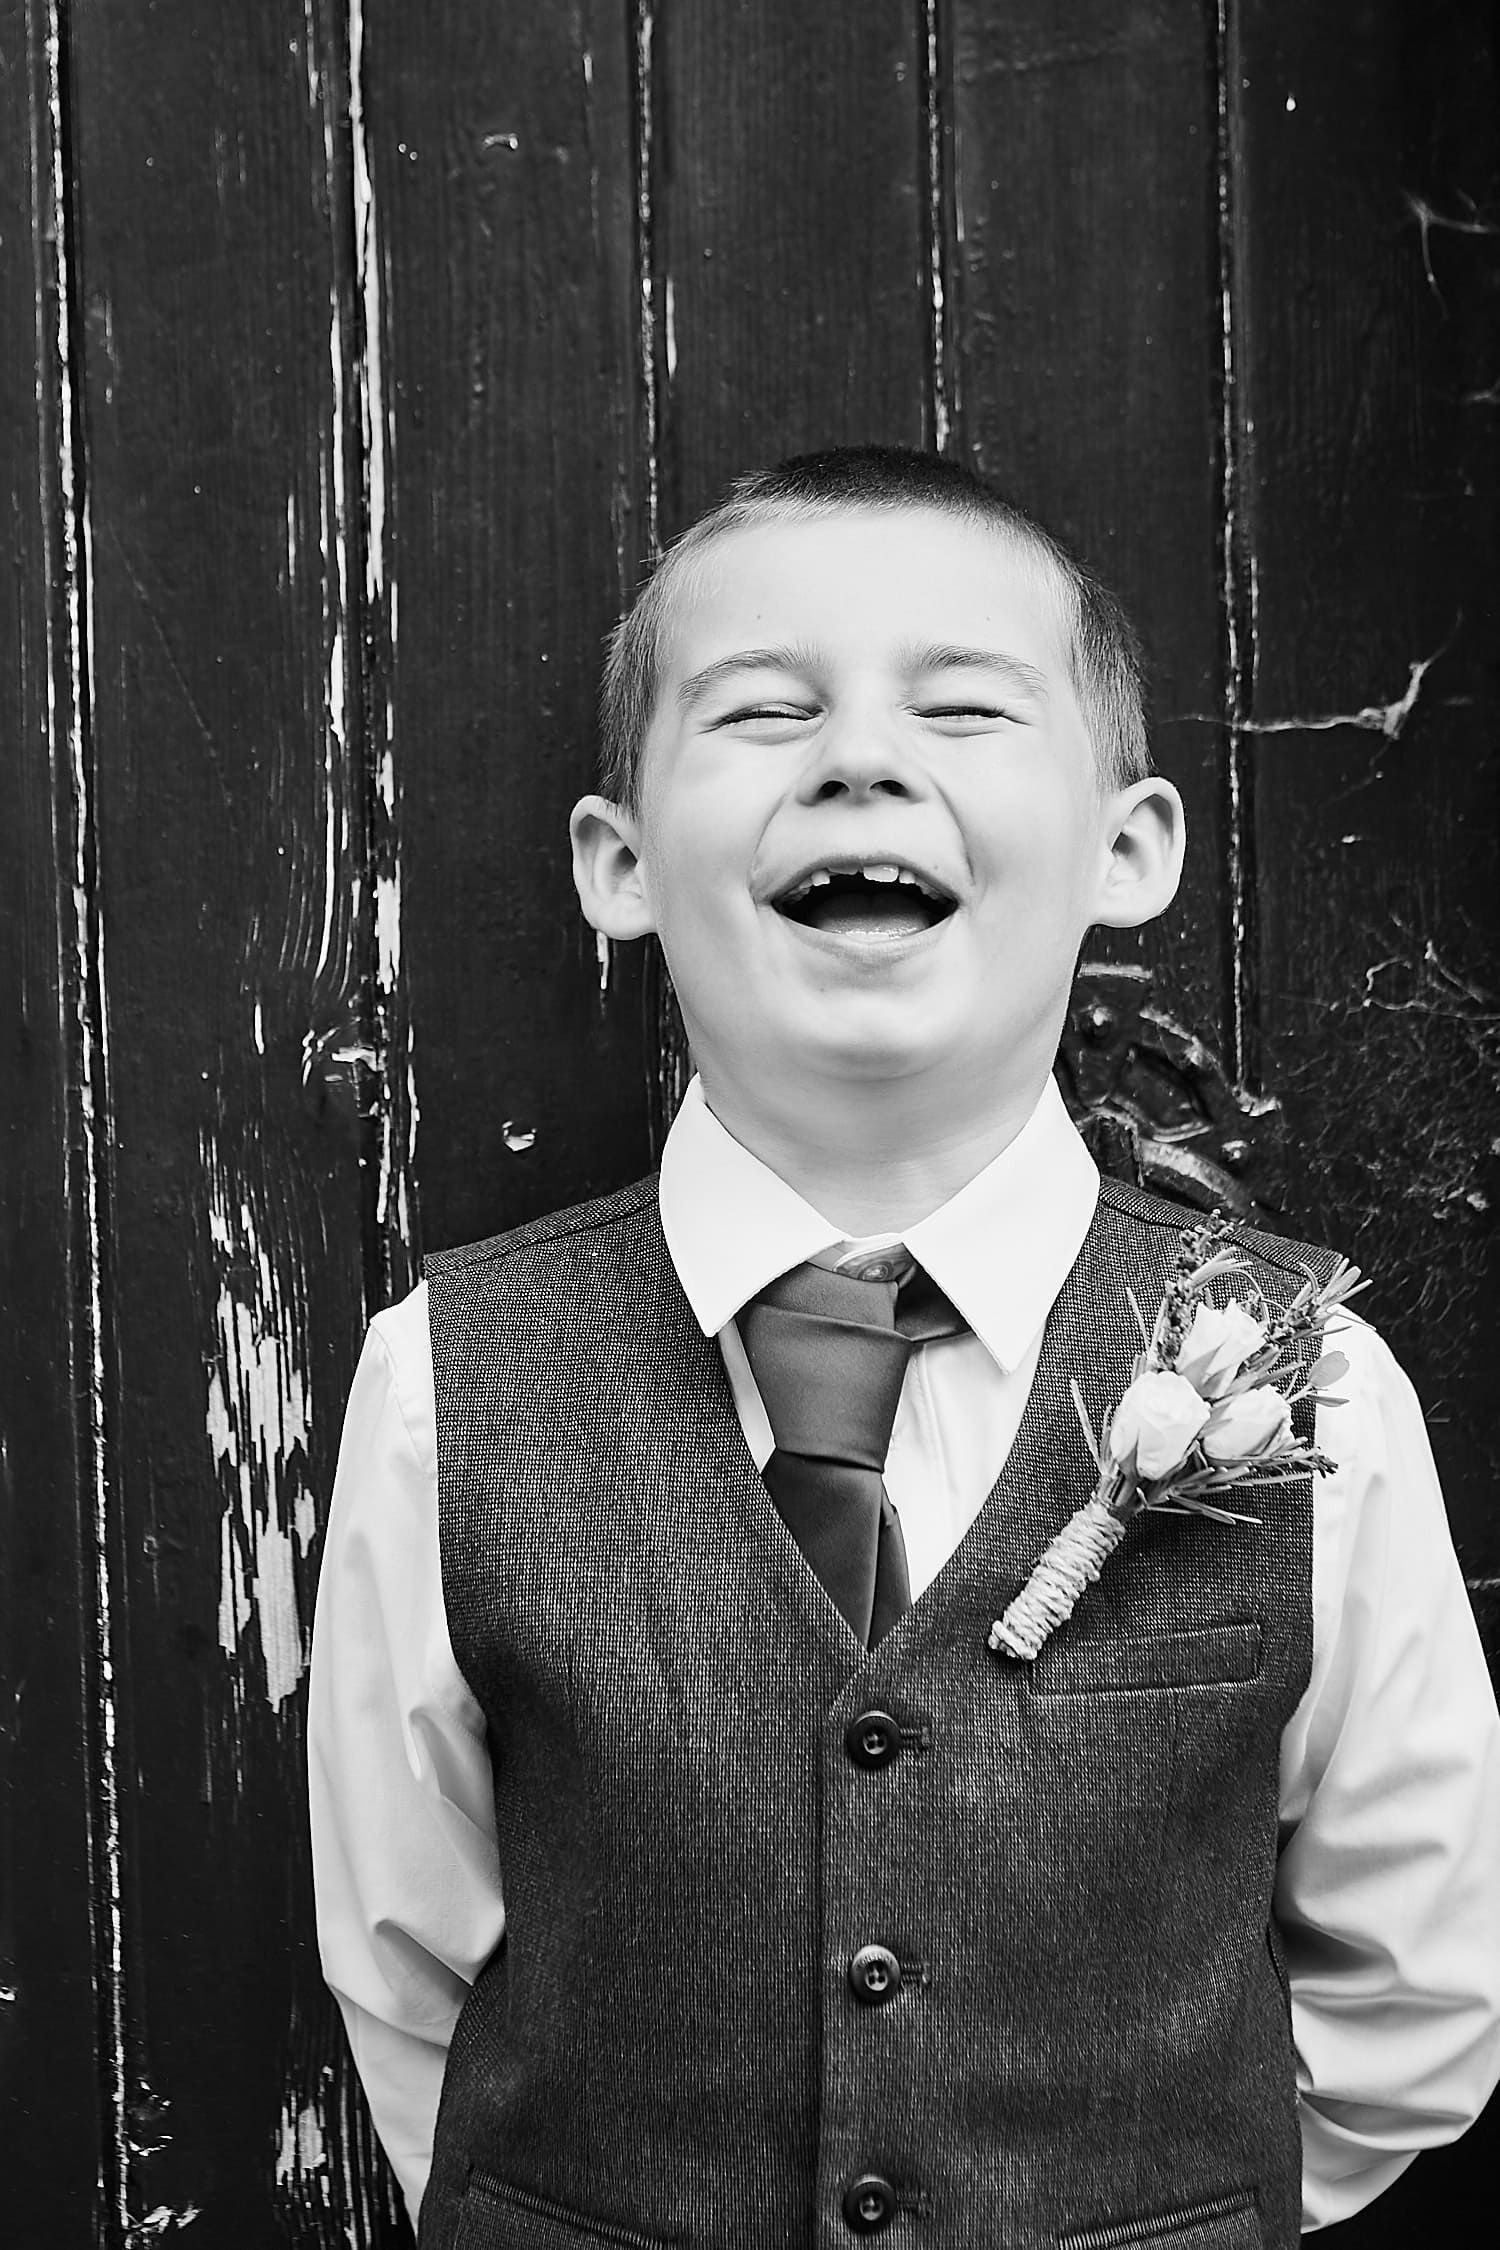 A page boy smiles and laughs against a black door